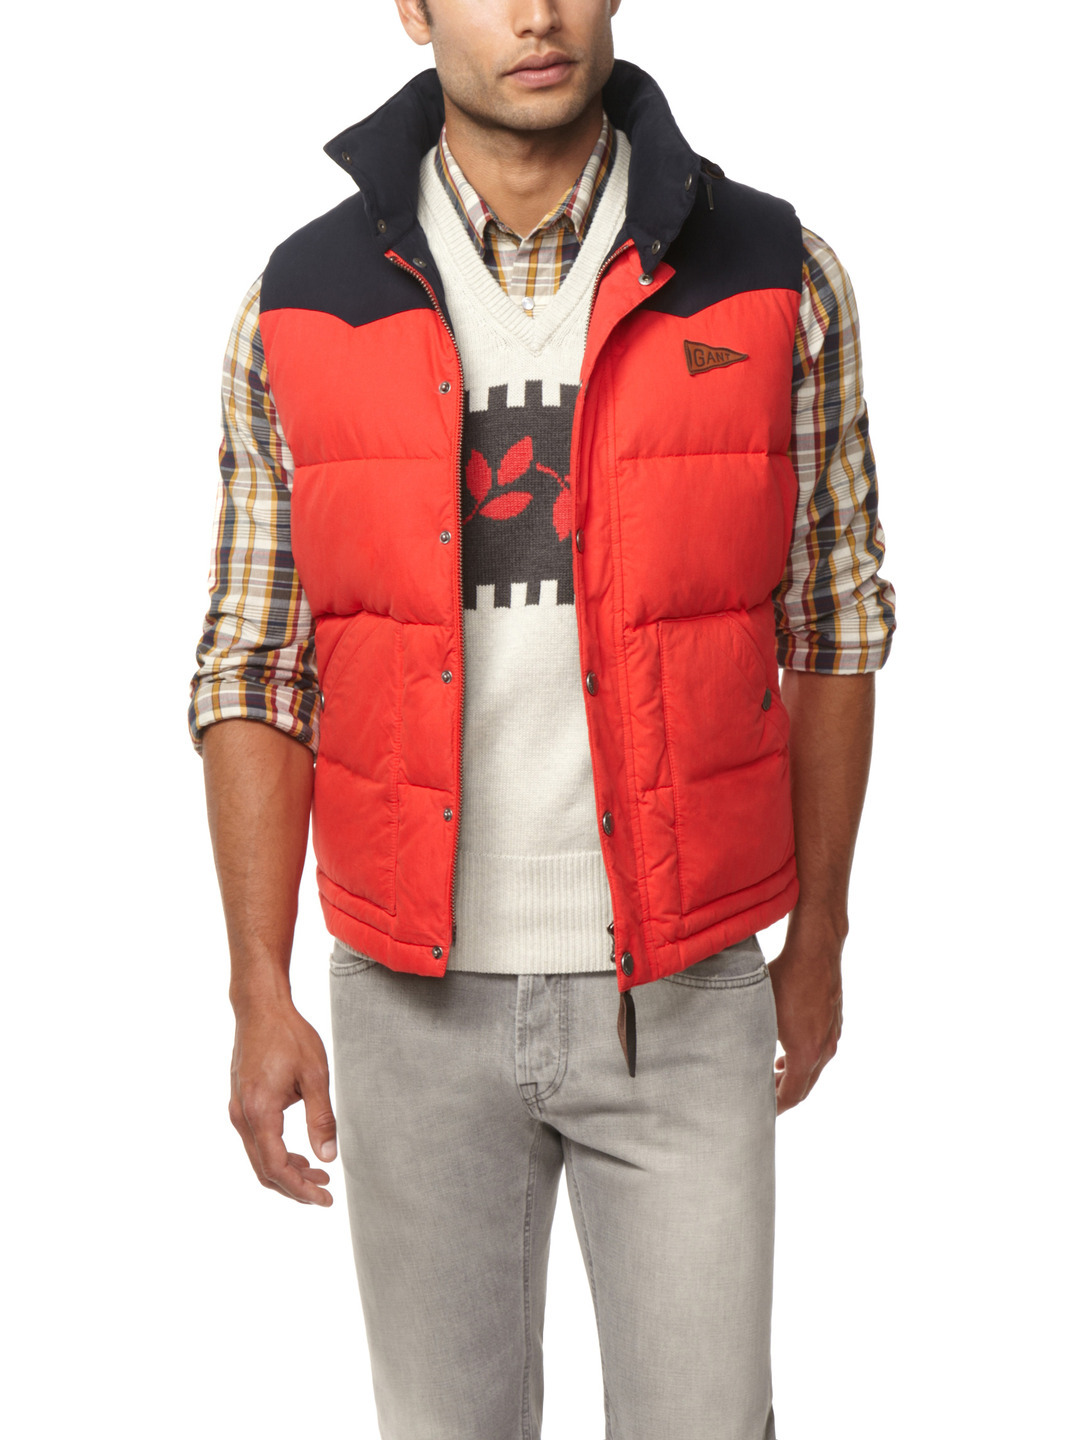 OUR PICK OF THE WEEK- GANT by Michael Bastian Down Vest Before y'all go lamenting how every #mahnswear jerk-off on Tumblr seems to be covering the Park & Bond 30% off sale, I suggest you check your shit and straight face realities, B. We are LAZAY: so fucking slothful that we be adding syllables to this joint.  A 30 % off site wide sale? At Park & Bond? How couldn't you cover that shit? That's like menswear crack cocaine! Don't get me wrong, the sort of people who can afford two thousand dollar topcoats don't actually want to save their blood money but use sales to aid in the delusion that they are forward thinking, well informed fashion insiders (that are incidentally better than everyone else). Oh are you still with me on this tangent? Right…well, here's our pick of the week. Before anyone mercs on my Gant love just remember: I'm trying to save you those pennies WHILE delivering the goods, shit is tough sir. This GANT by Michael 'I Am Americana' Basty down vest may not be on par with say this alternative, but despite its polyester/wool blend made-in-Chinaland status is an effective layer for both spring and winter. In a washed out red and navy colour combination this will team as appropriately with your pensioner swag sweater as it does a navy jacket or long sleeve polo.  Have I mentioned they've taken $127 off the original price and that it currently is available in all sizes (S-XL)? Seriously how often do bloggers actually link you to shit that isn't in the most ridiculous leftover sizes: like 26.3 and a 1/7? What is this, down quilting for my balls?  Available from Park & Bond STYLETERNITY